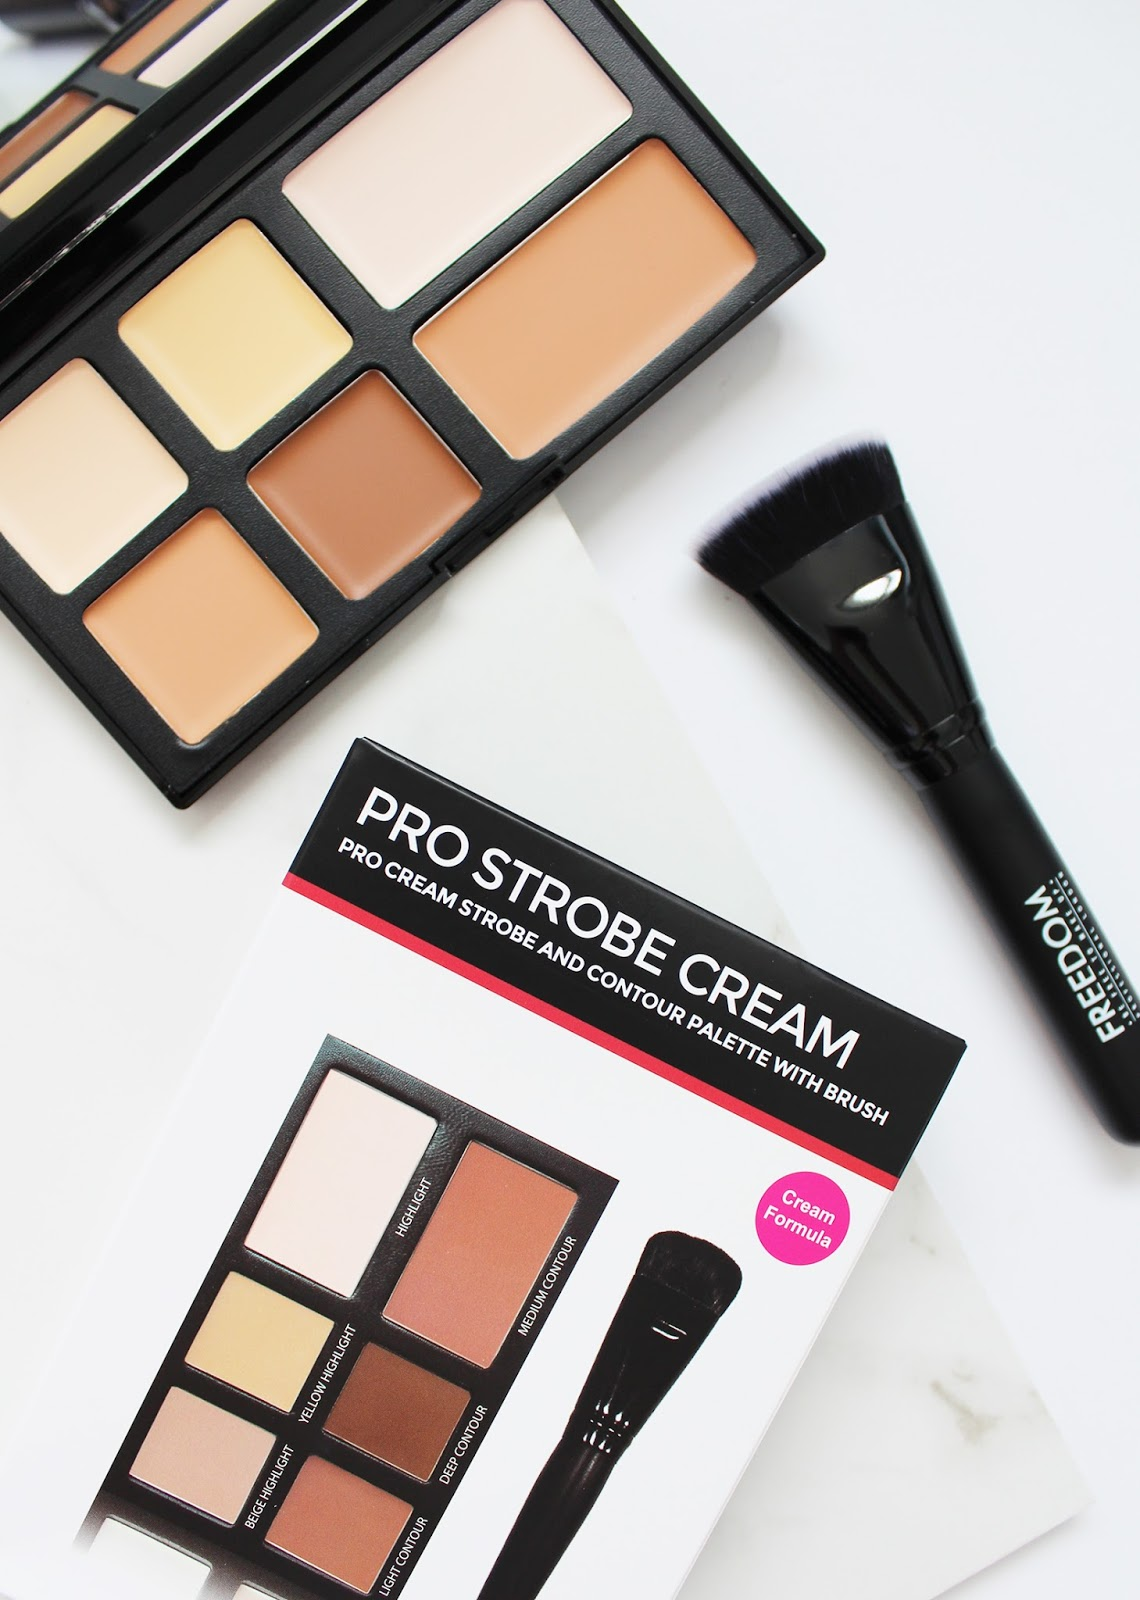 FREEDOM MAKEUP LONDON | Pro Strobe Cream Contour Palette - Review + Swatches - CassandraMyee